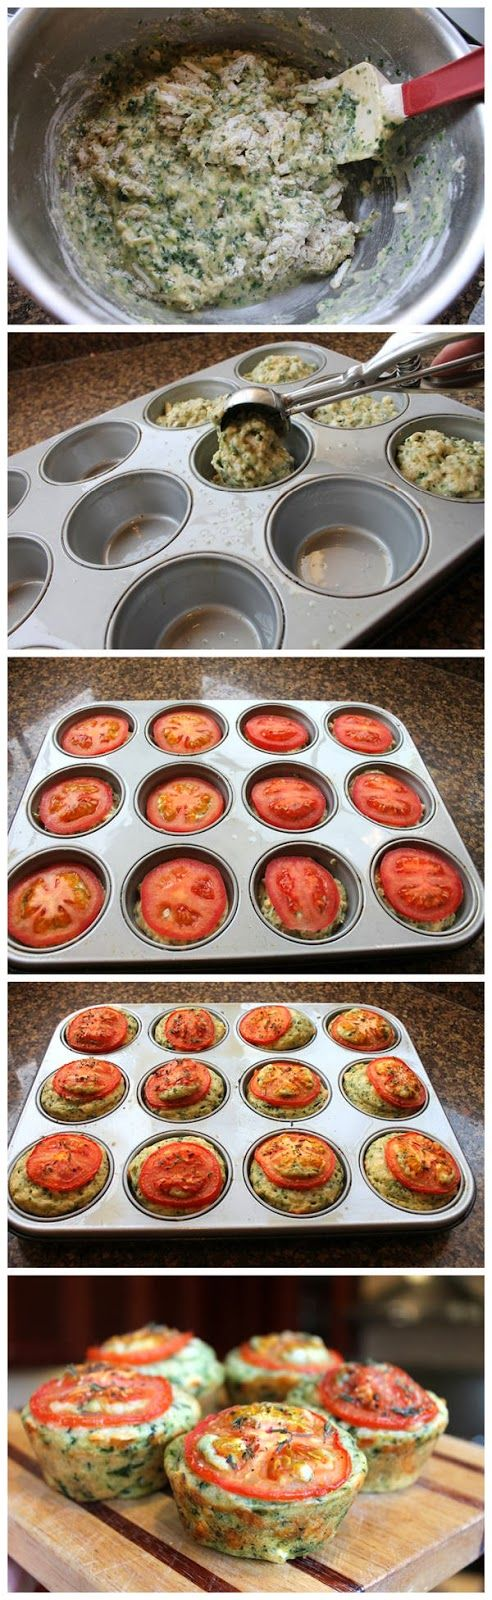 Cheesy Spinach Muffins ~ They are easy to make, ready in no time and are able to feed the hungry crowd. And with only few easy ingredients you will be able to make an enjoyable breakfast or brunch.